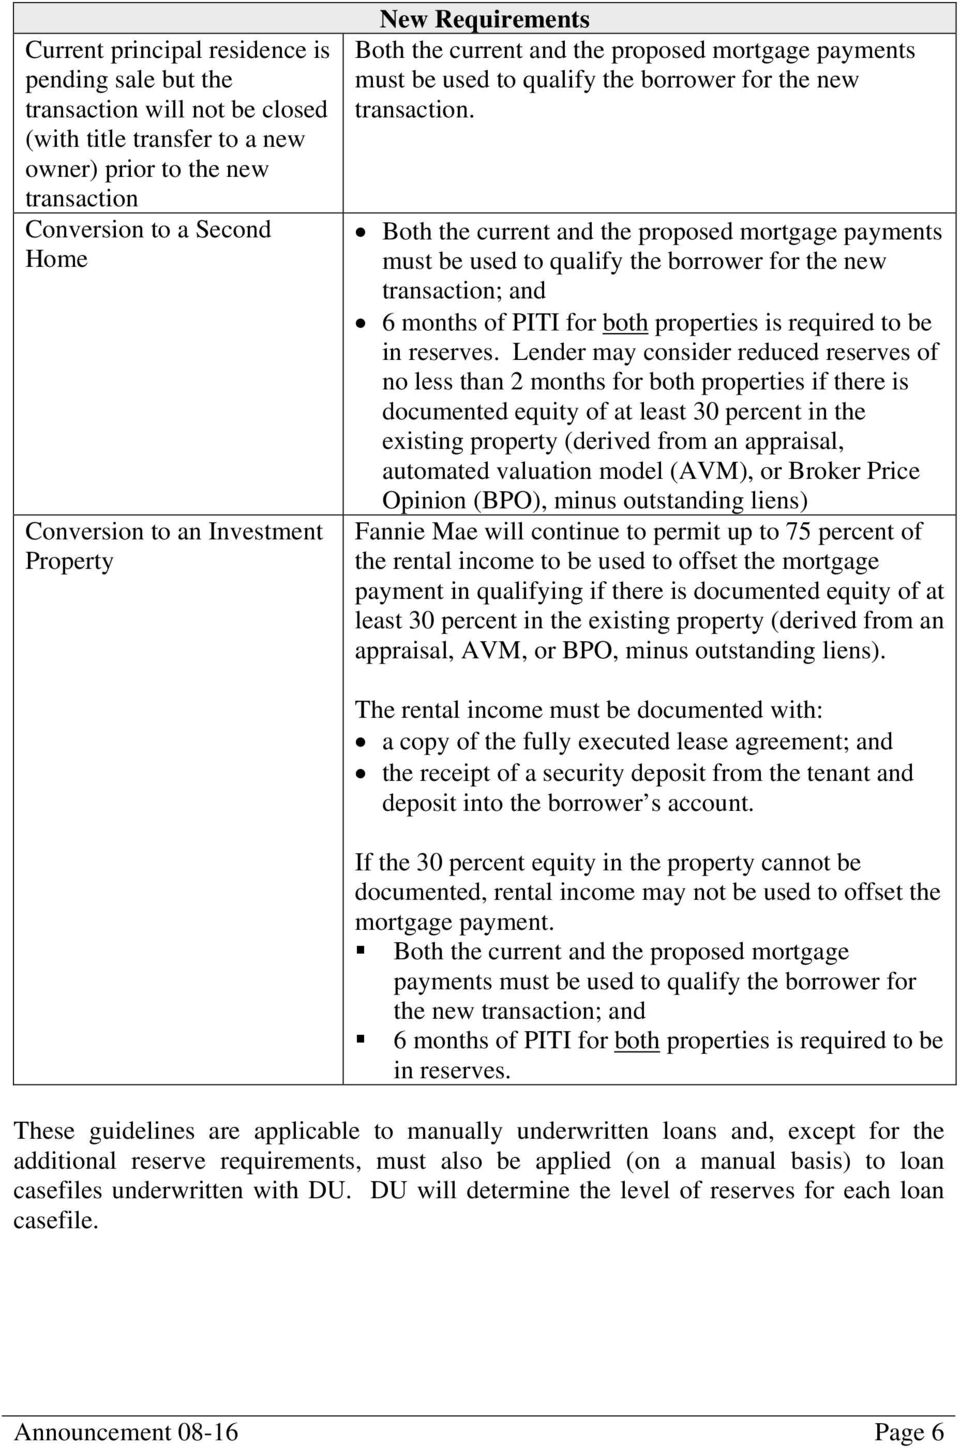 Both the current and the proposed mortgage payments must be used to qualify the borrower for the new transaction; and 6 months of PITI for both properties is required to be in reserves.